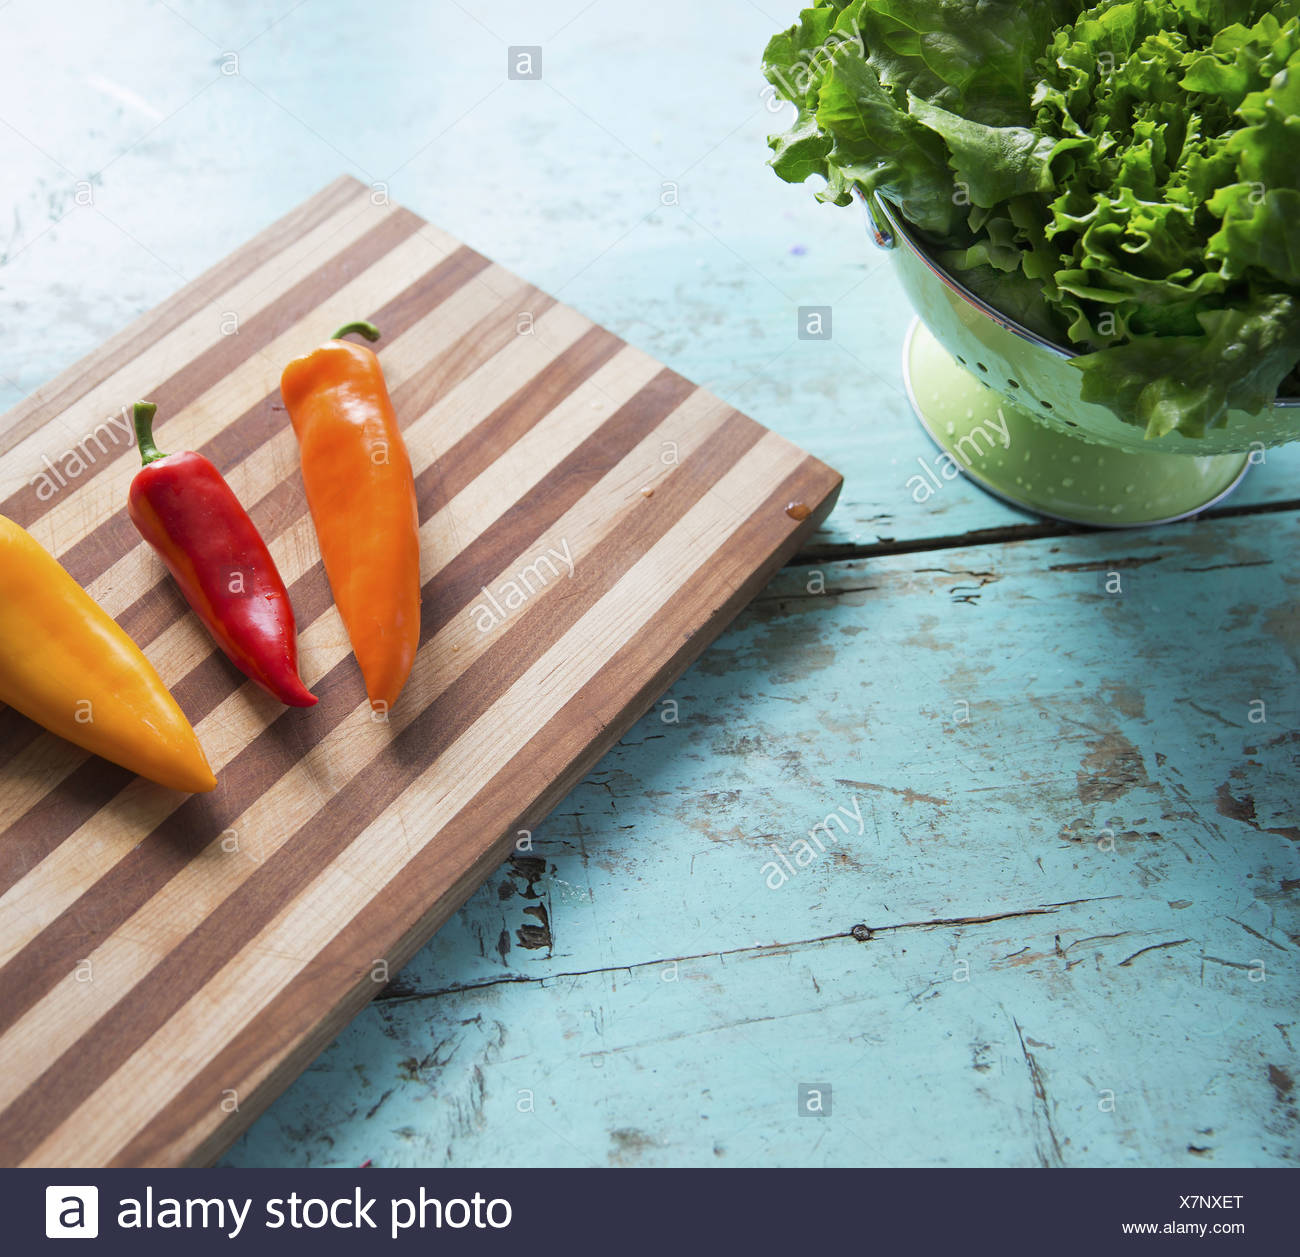 A tabletop with a wooden chopping board and three sweet peppers and a bowl of salad leaves - Stock Image